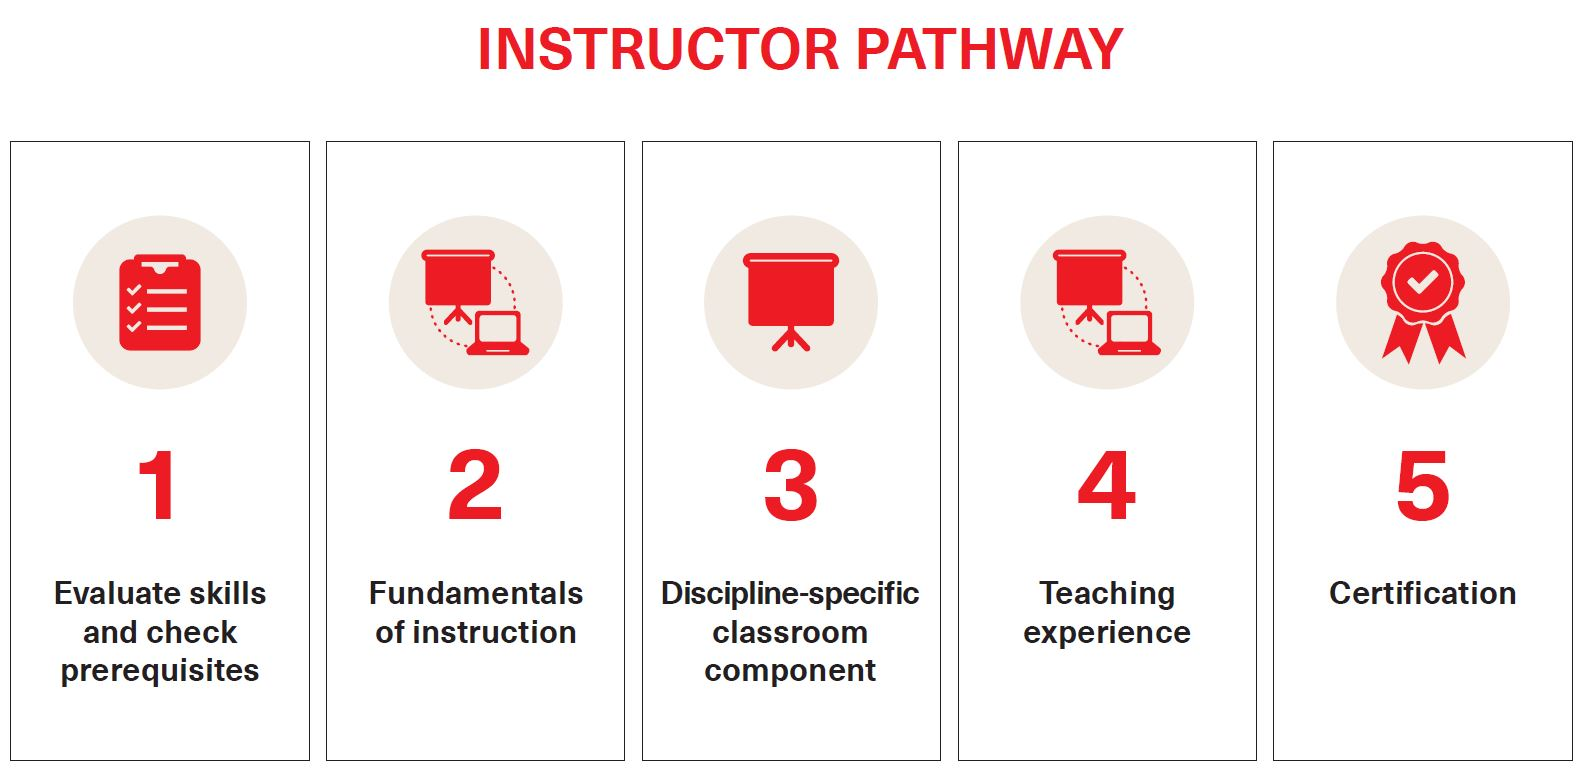 INSTRUCTOR PATHWAY